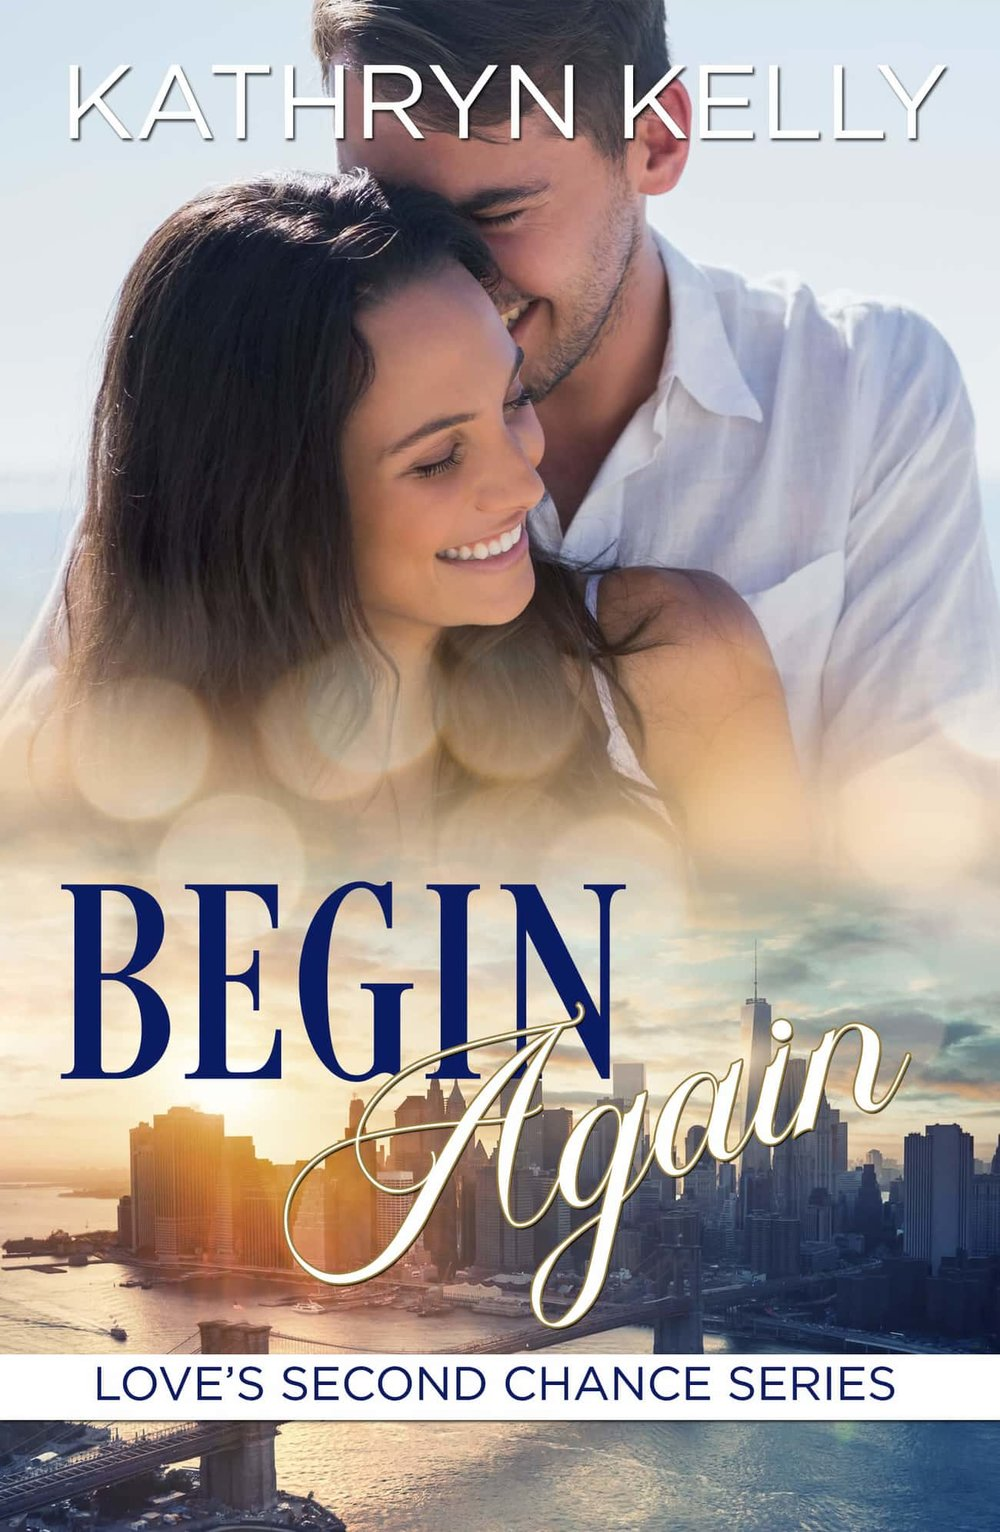 Begin Again - Savannah Richards may be charming, fashionable, and, thanks to her intelligence, at the top of her career as a drug rep, but she doesn't have time for romance. She found love once, twenty years ago, but it didn't end well. Noah set a high bar for love in Savannah's dreams. No other man had ever come close.Noah Worthington's career as an airline pilot keeps him in the air more than at home. Maybe that contributed to the downfall of his marriage. Or maybe it was the memories of the studious college freshman he'd left behind. Then a chance encounter with her sends his heart soaring. Can he be the man now that he failed to be twenty years ago?Savannah doesn't believe in chance. Noah disappeared from her life once. Now he's back. Forgiving past wrongs would take courage. Has too much time passed, or are they willing to take a second chance on a once in a lifetime love?